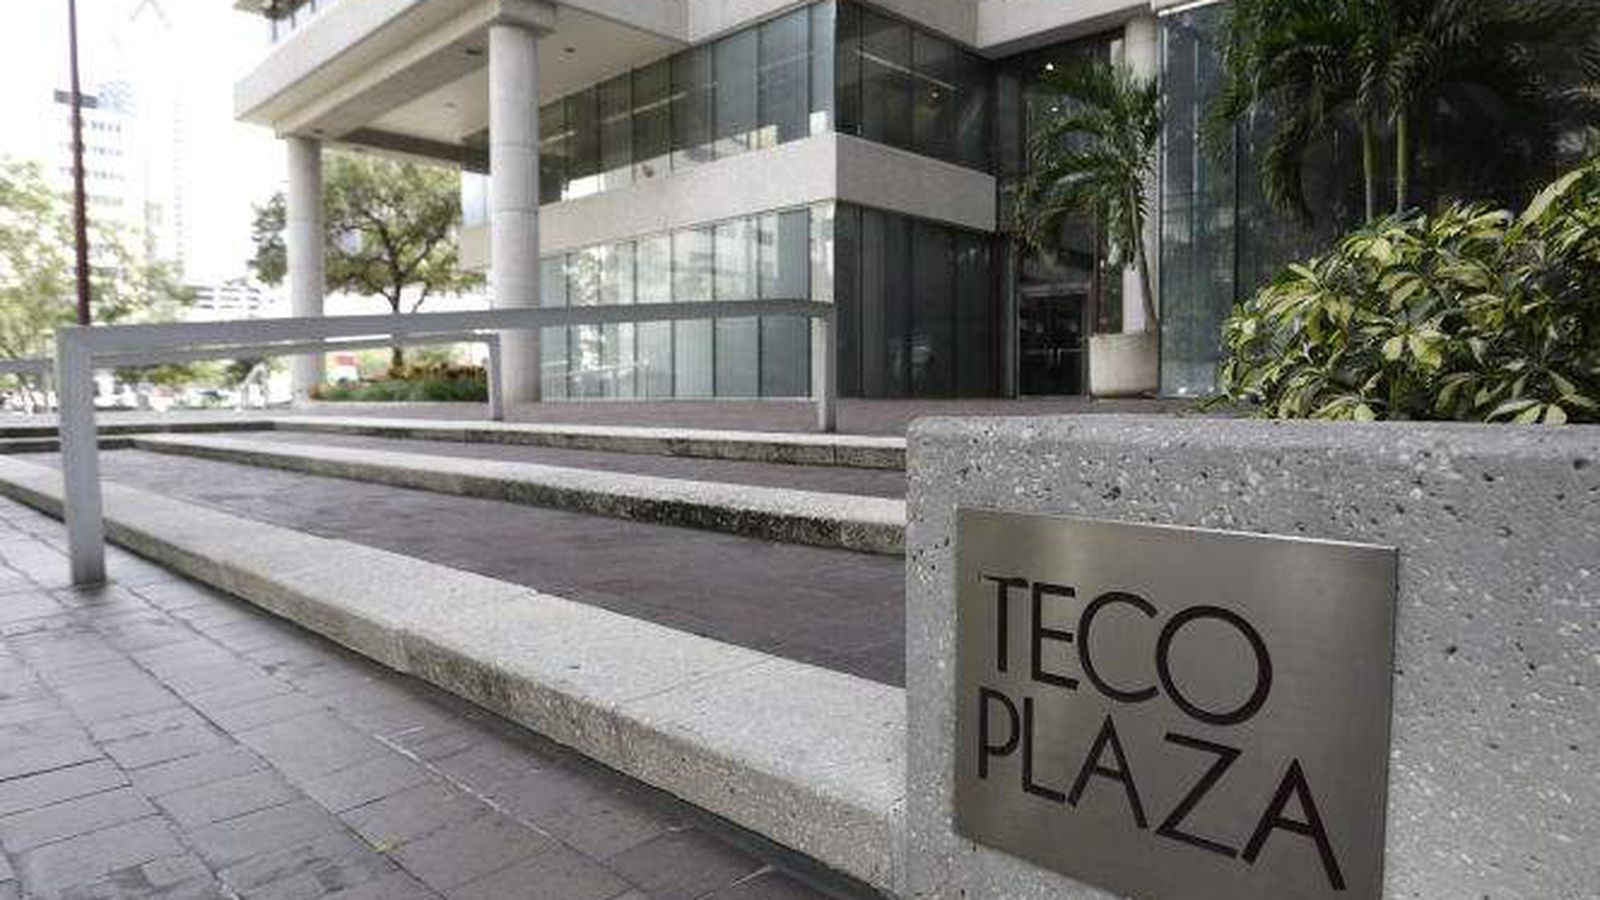 Tampa Electric Co. will ask regulators for a rate increase. Pictured is the company's Tampa headquarters. | [JAMES BORCHUCK | Times ]